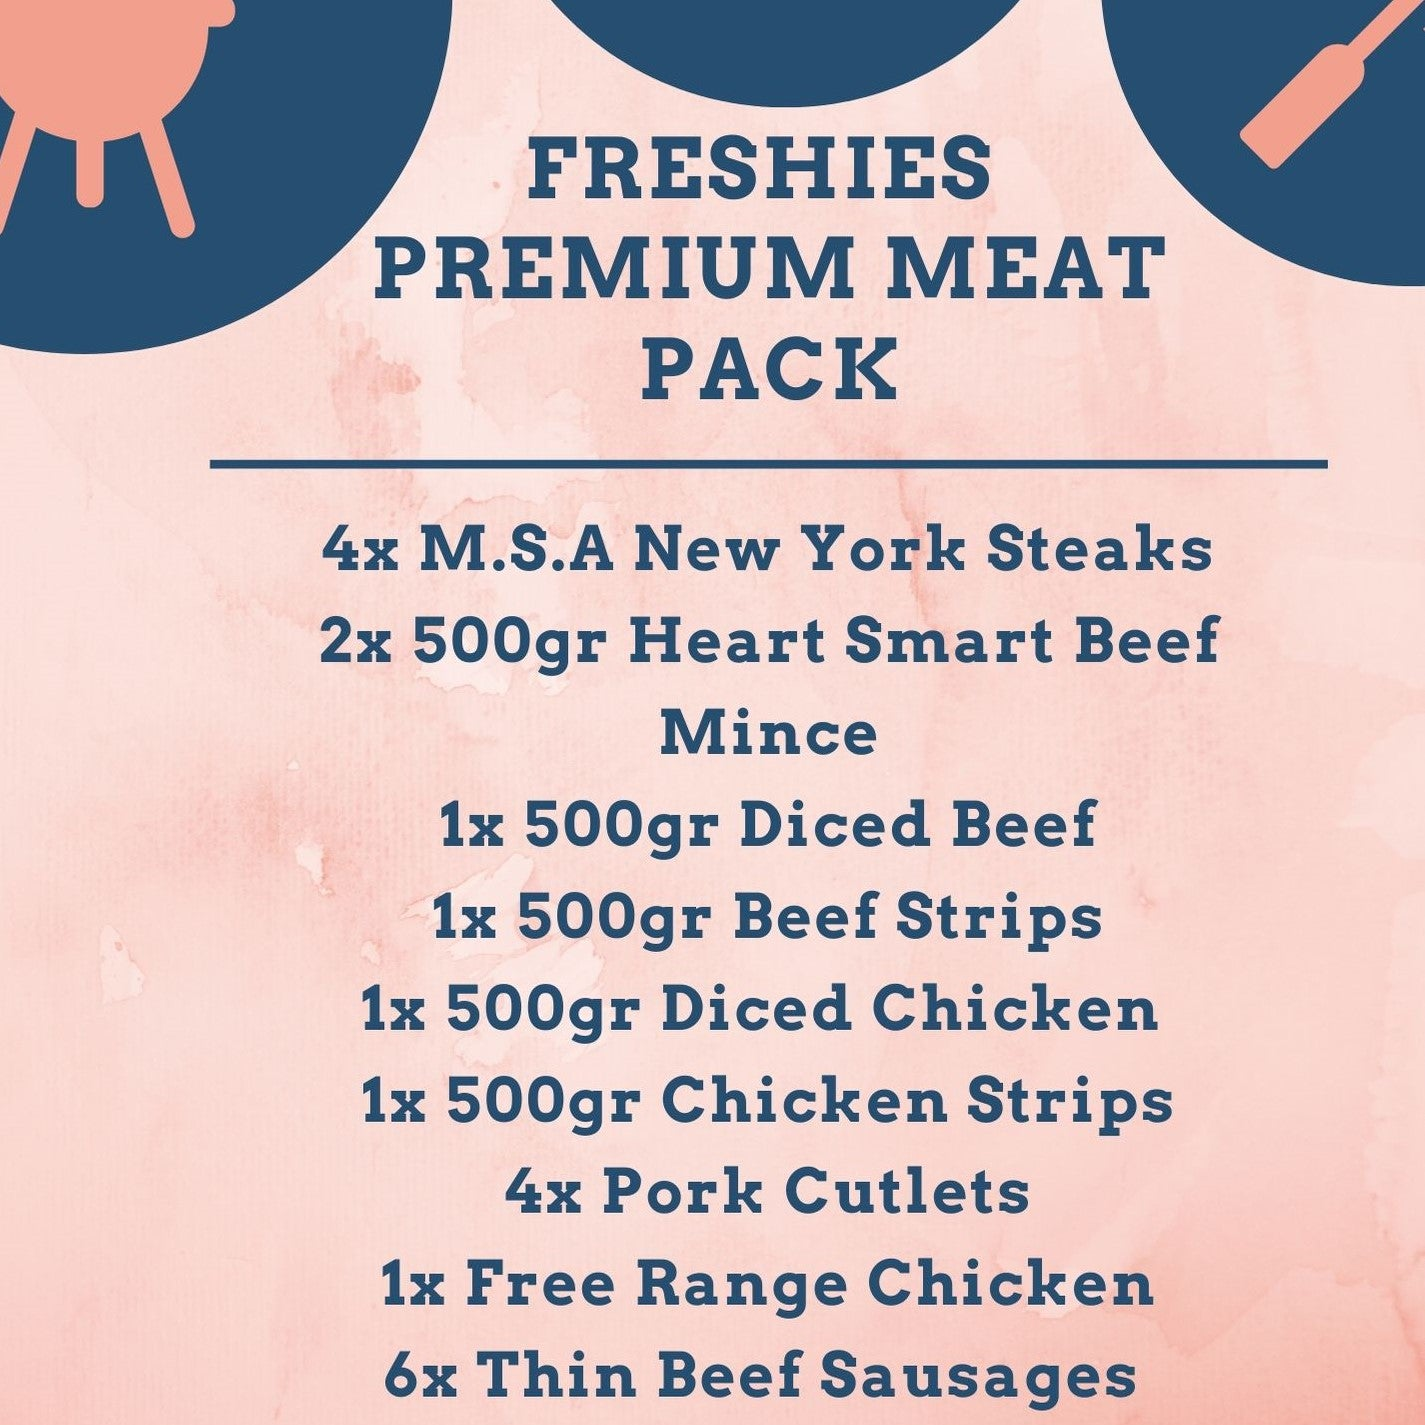 Freshies Premium Meat Pack